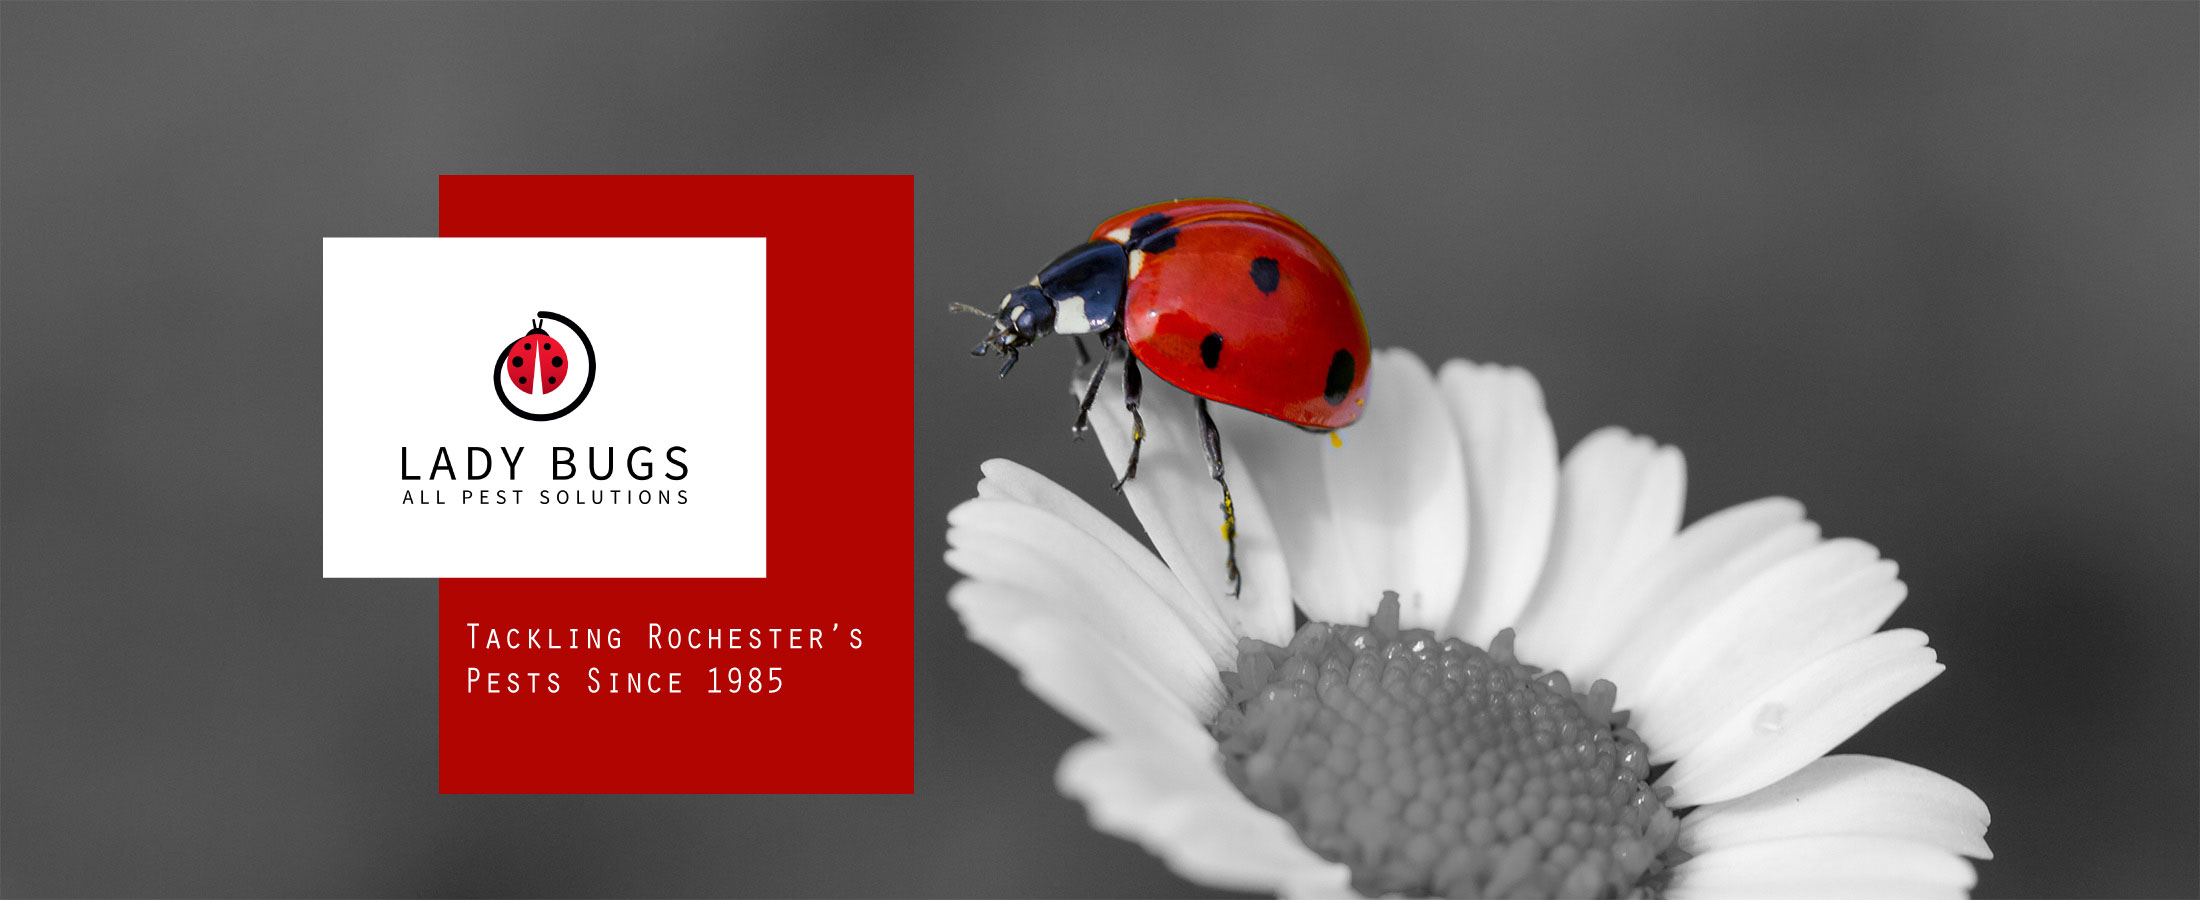 lady bug pest logo on picture of daisy with lady bug